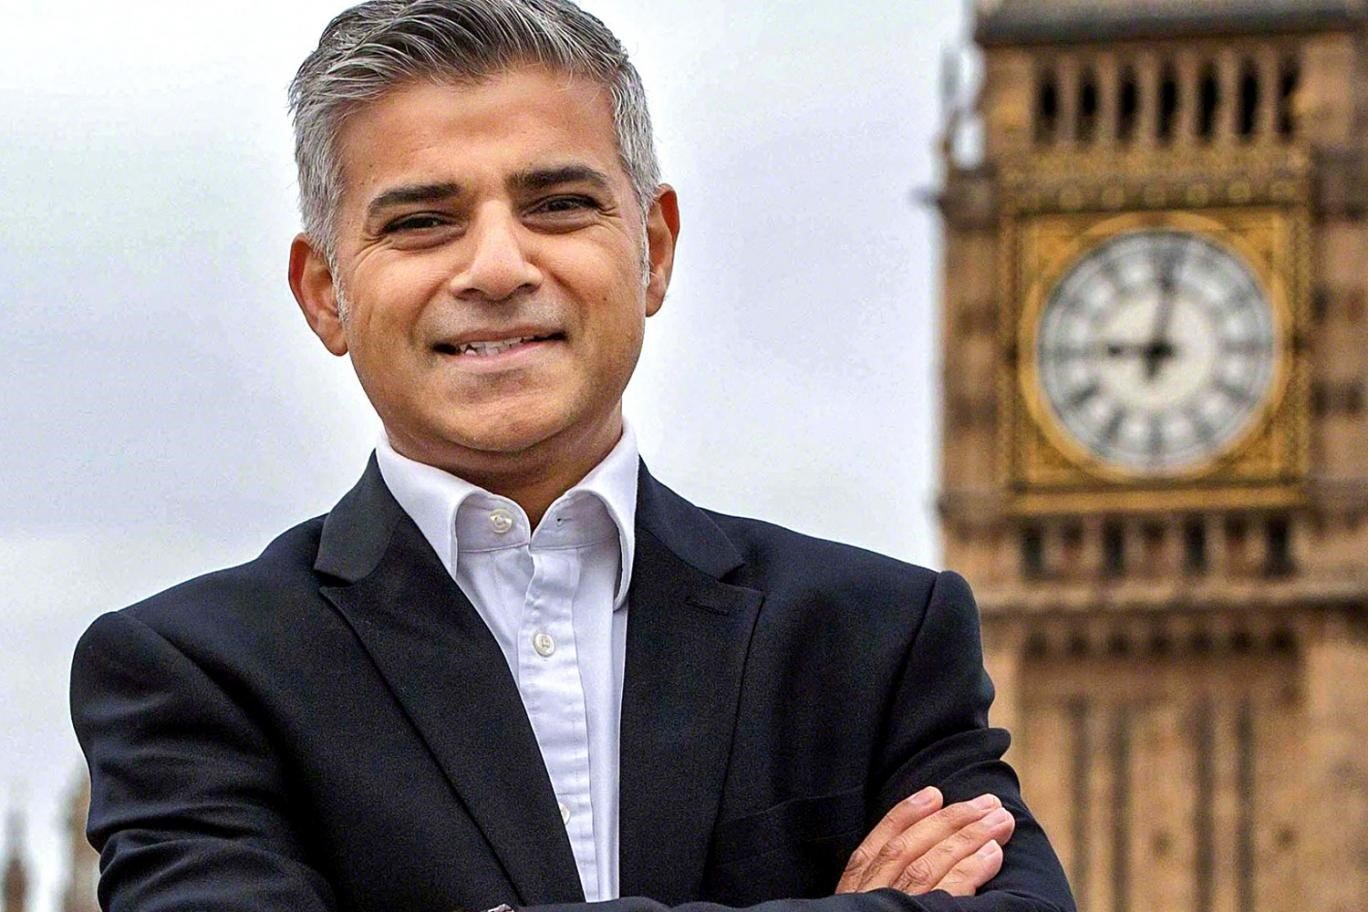 Why is Mayor Sadiq Khan a Ray of Hope?